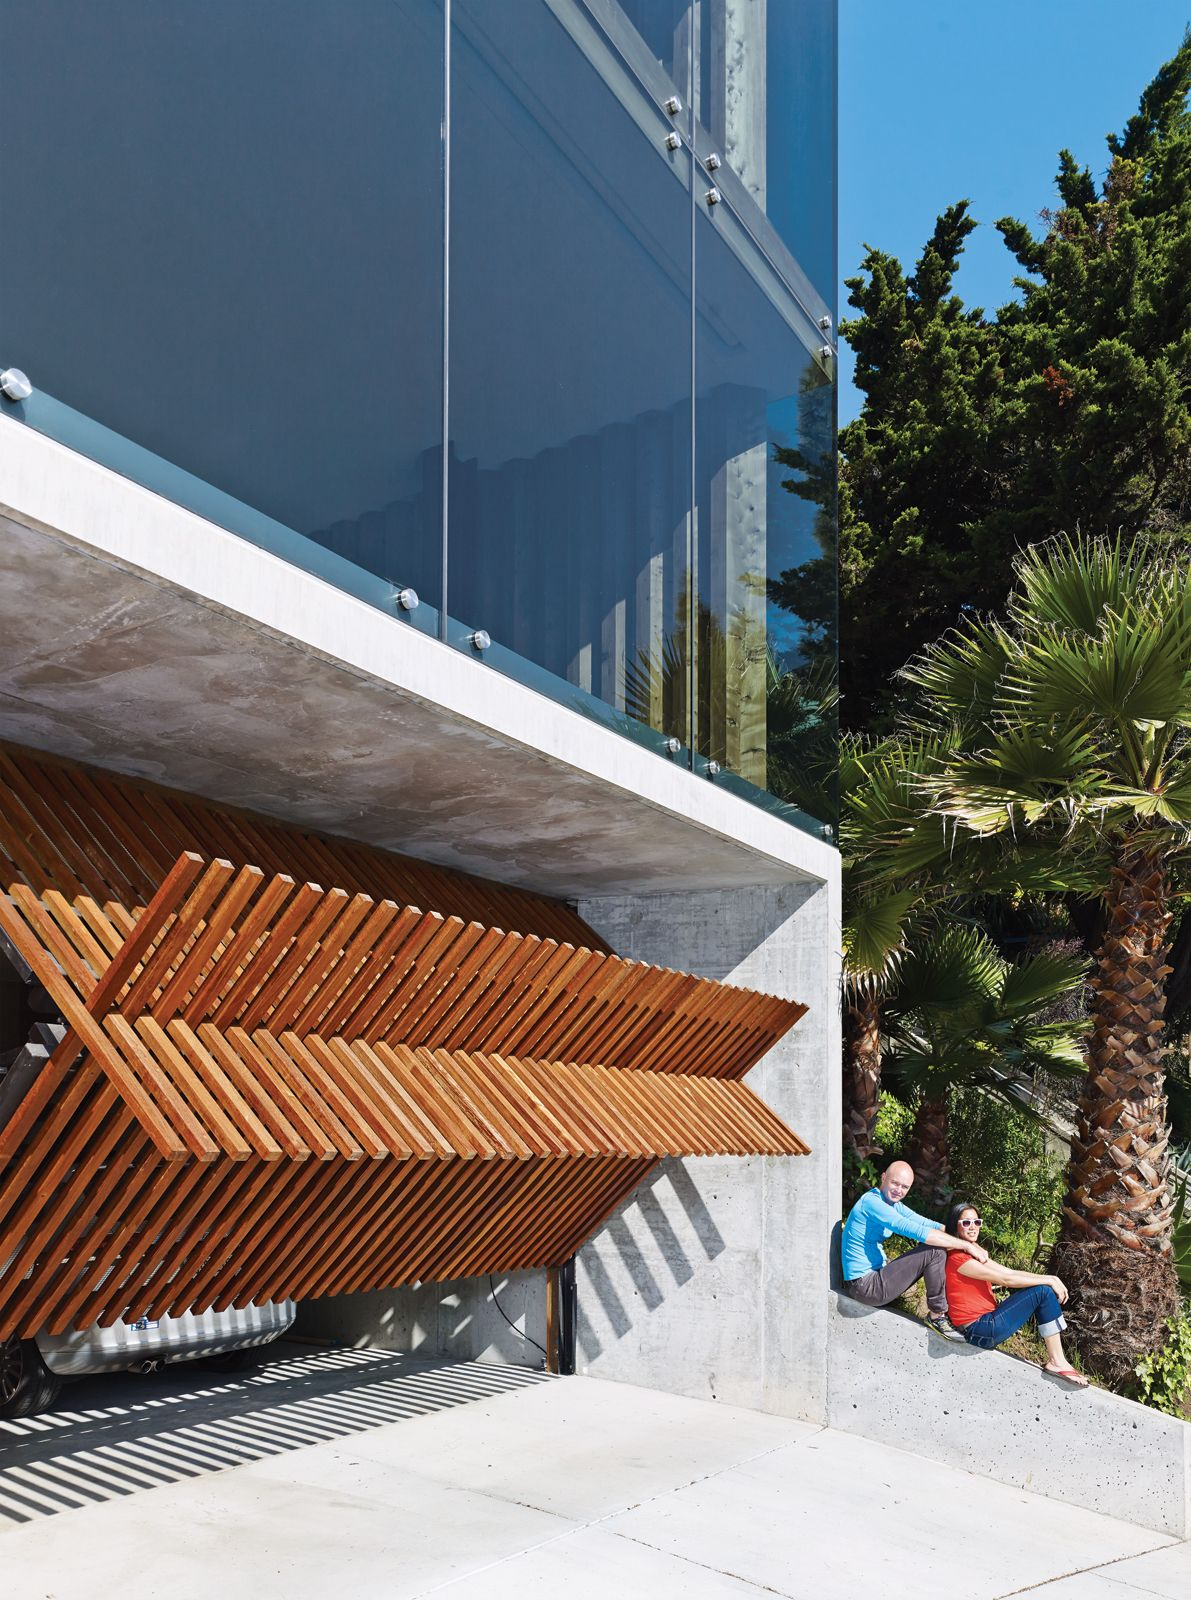 garage door pivots planks in two directions peter s house garage door striking slatted wood and glass home in san francisco teaming up with architect craig steely an industrial designer and a mechanical engineer